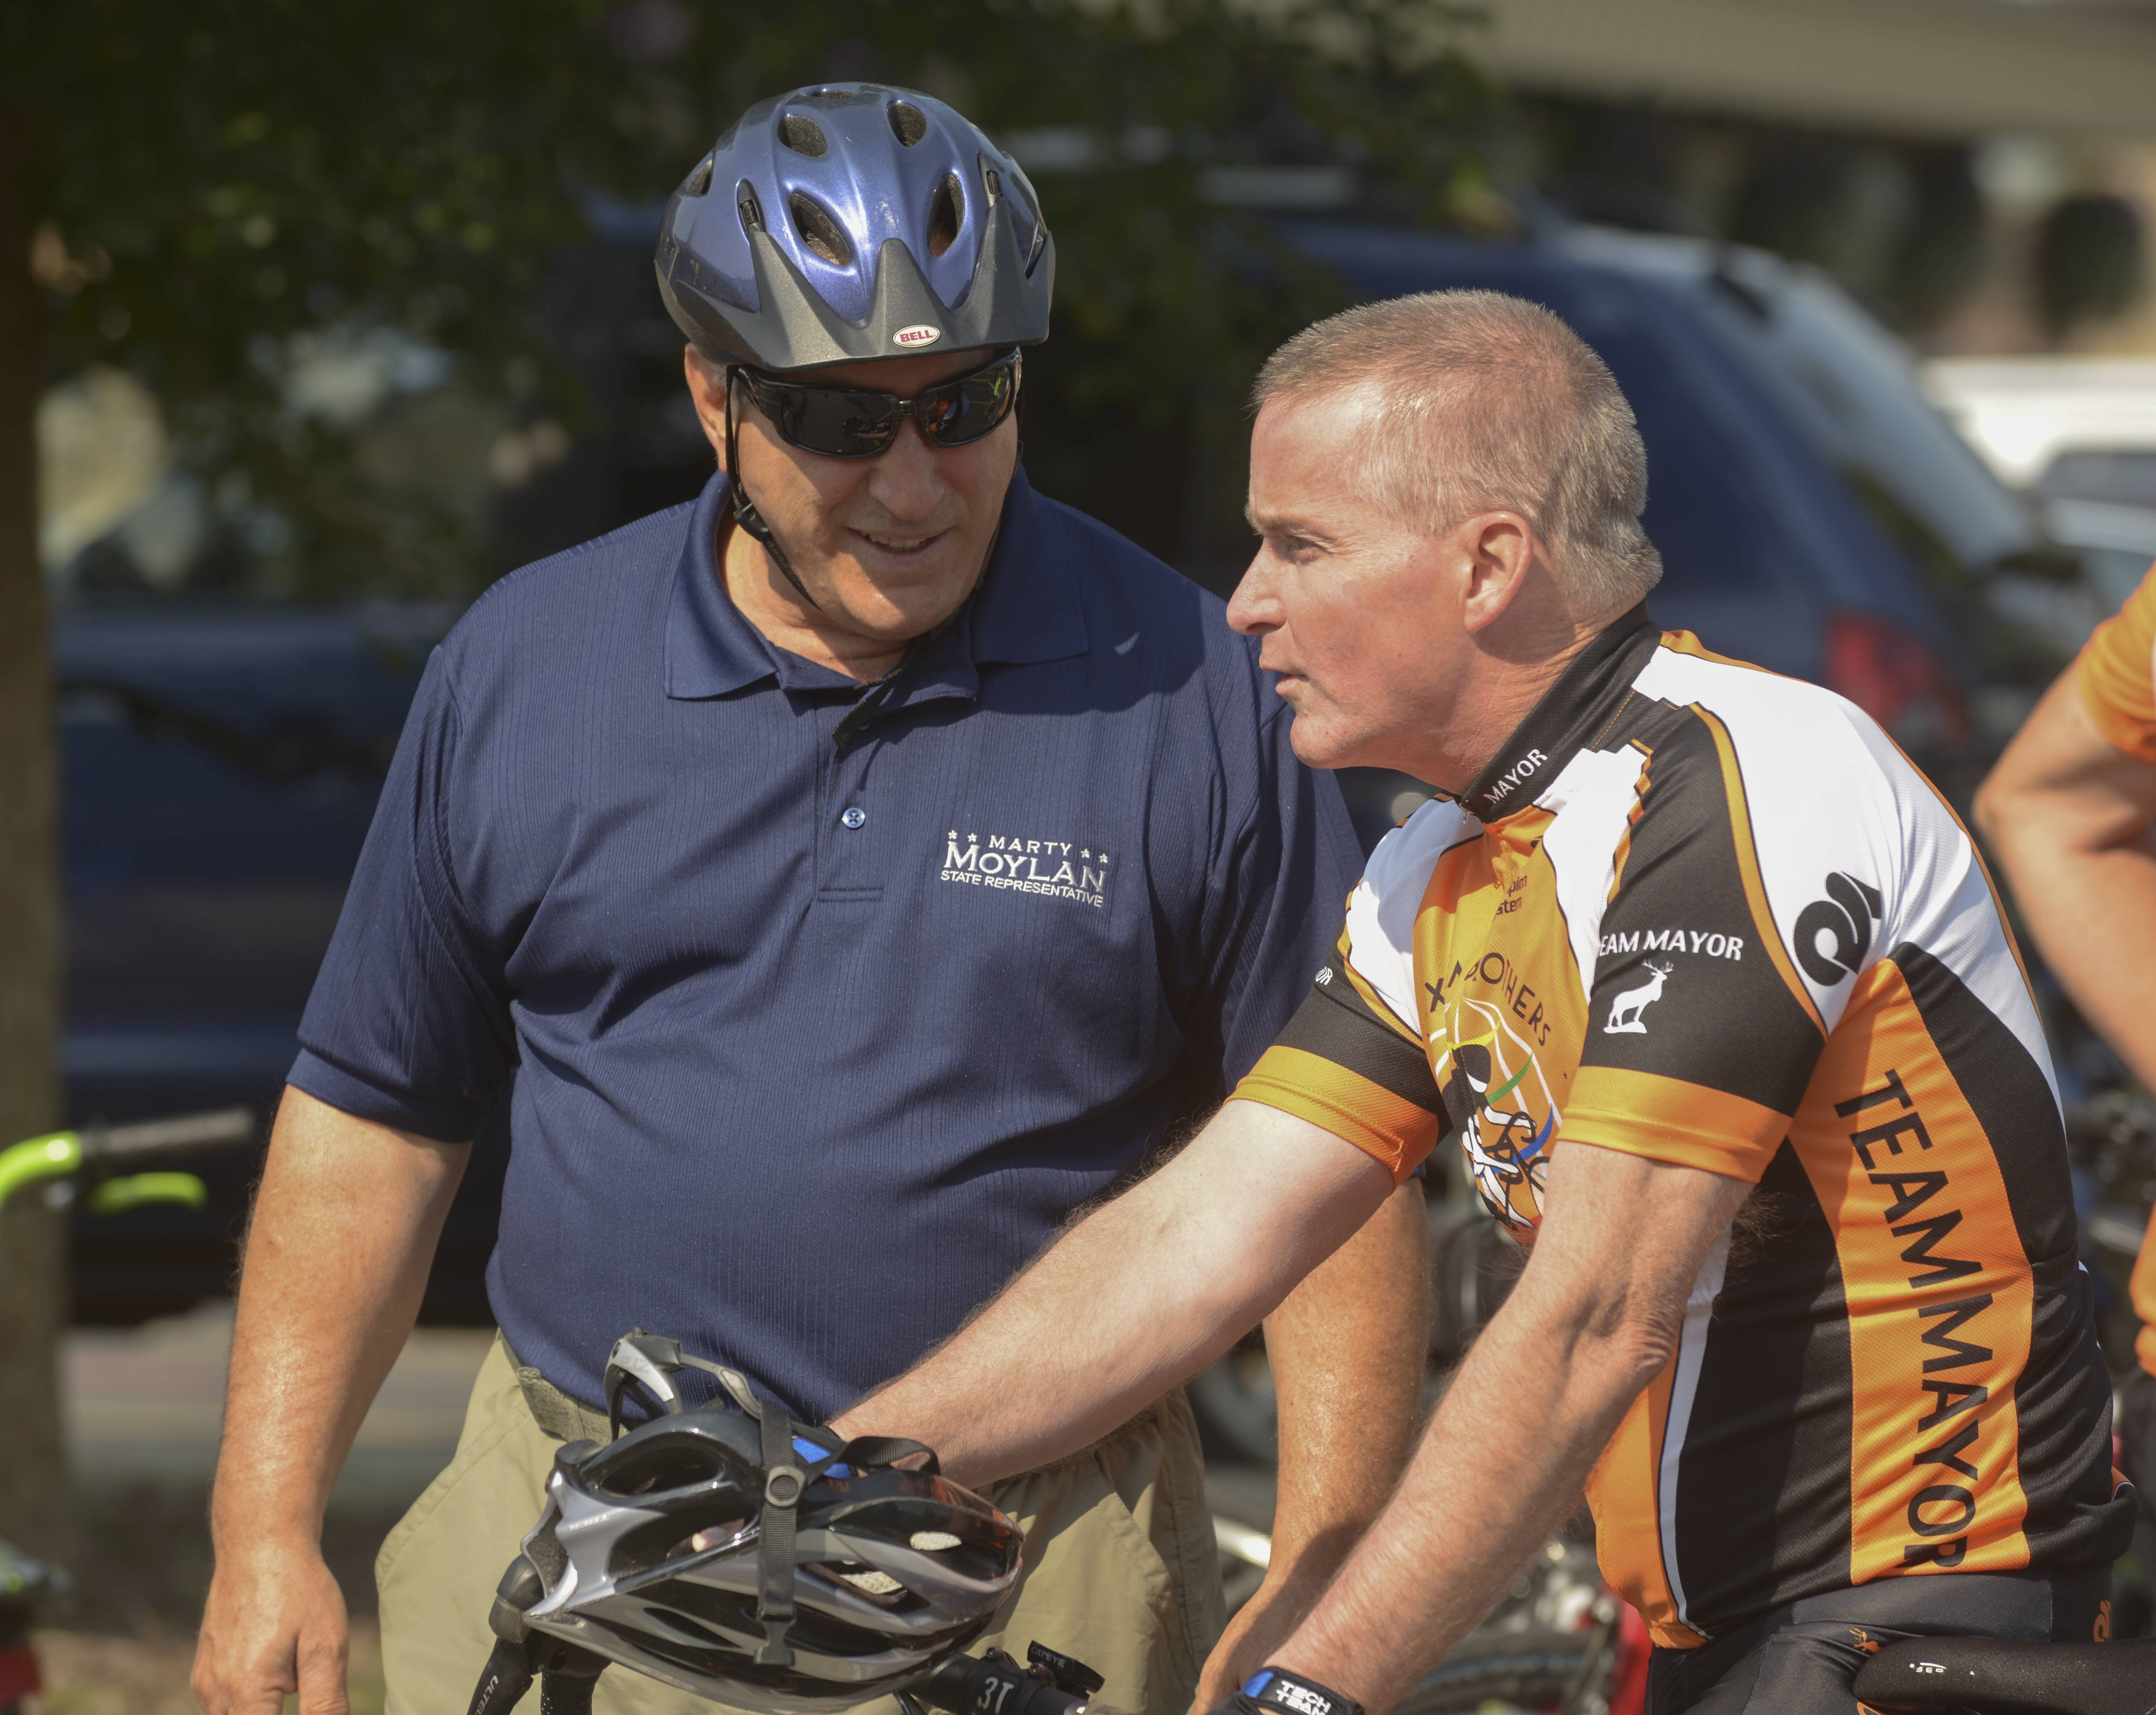 State Rep. Marty Moylan and Elk Grove Village Mayor Craig Johnson talk before leading cyclists around Elk Grove Village Saturday to encourage cycling.